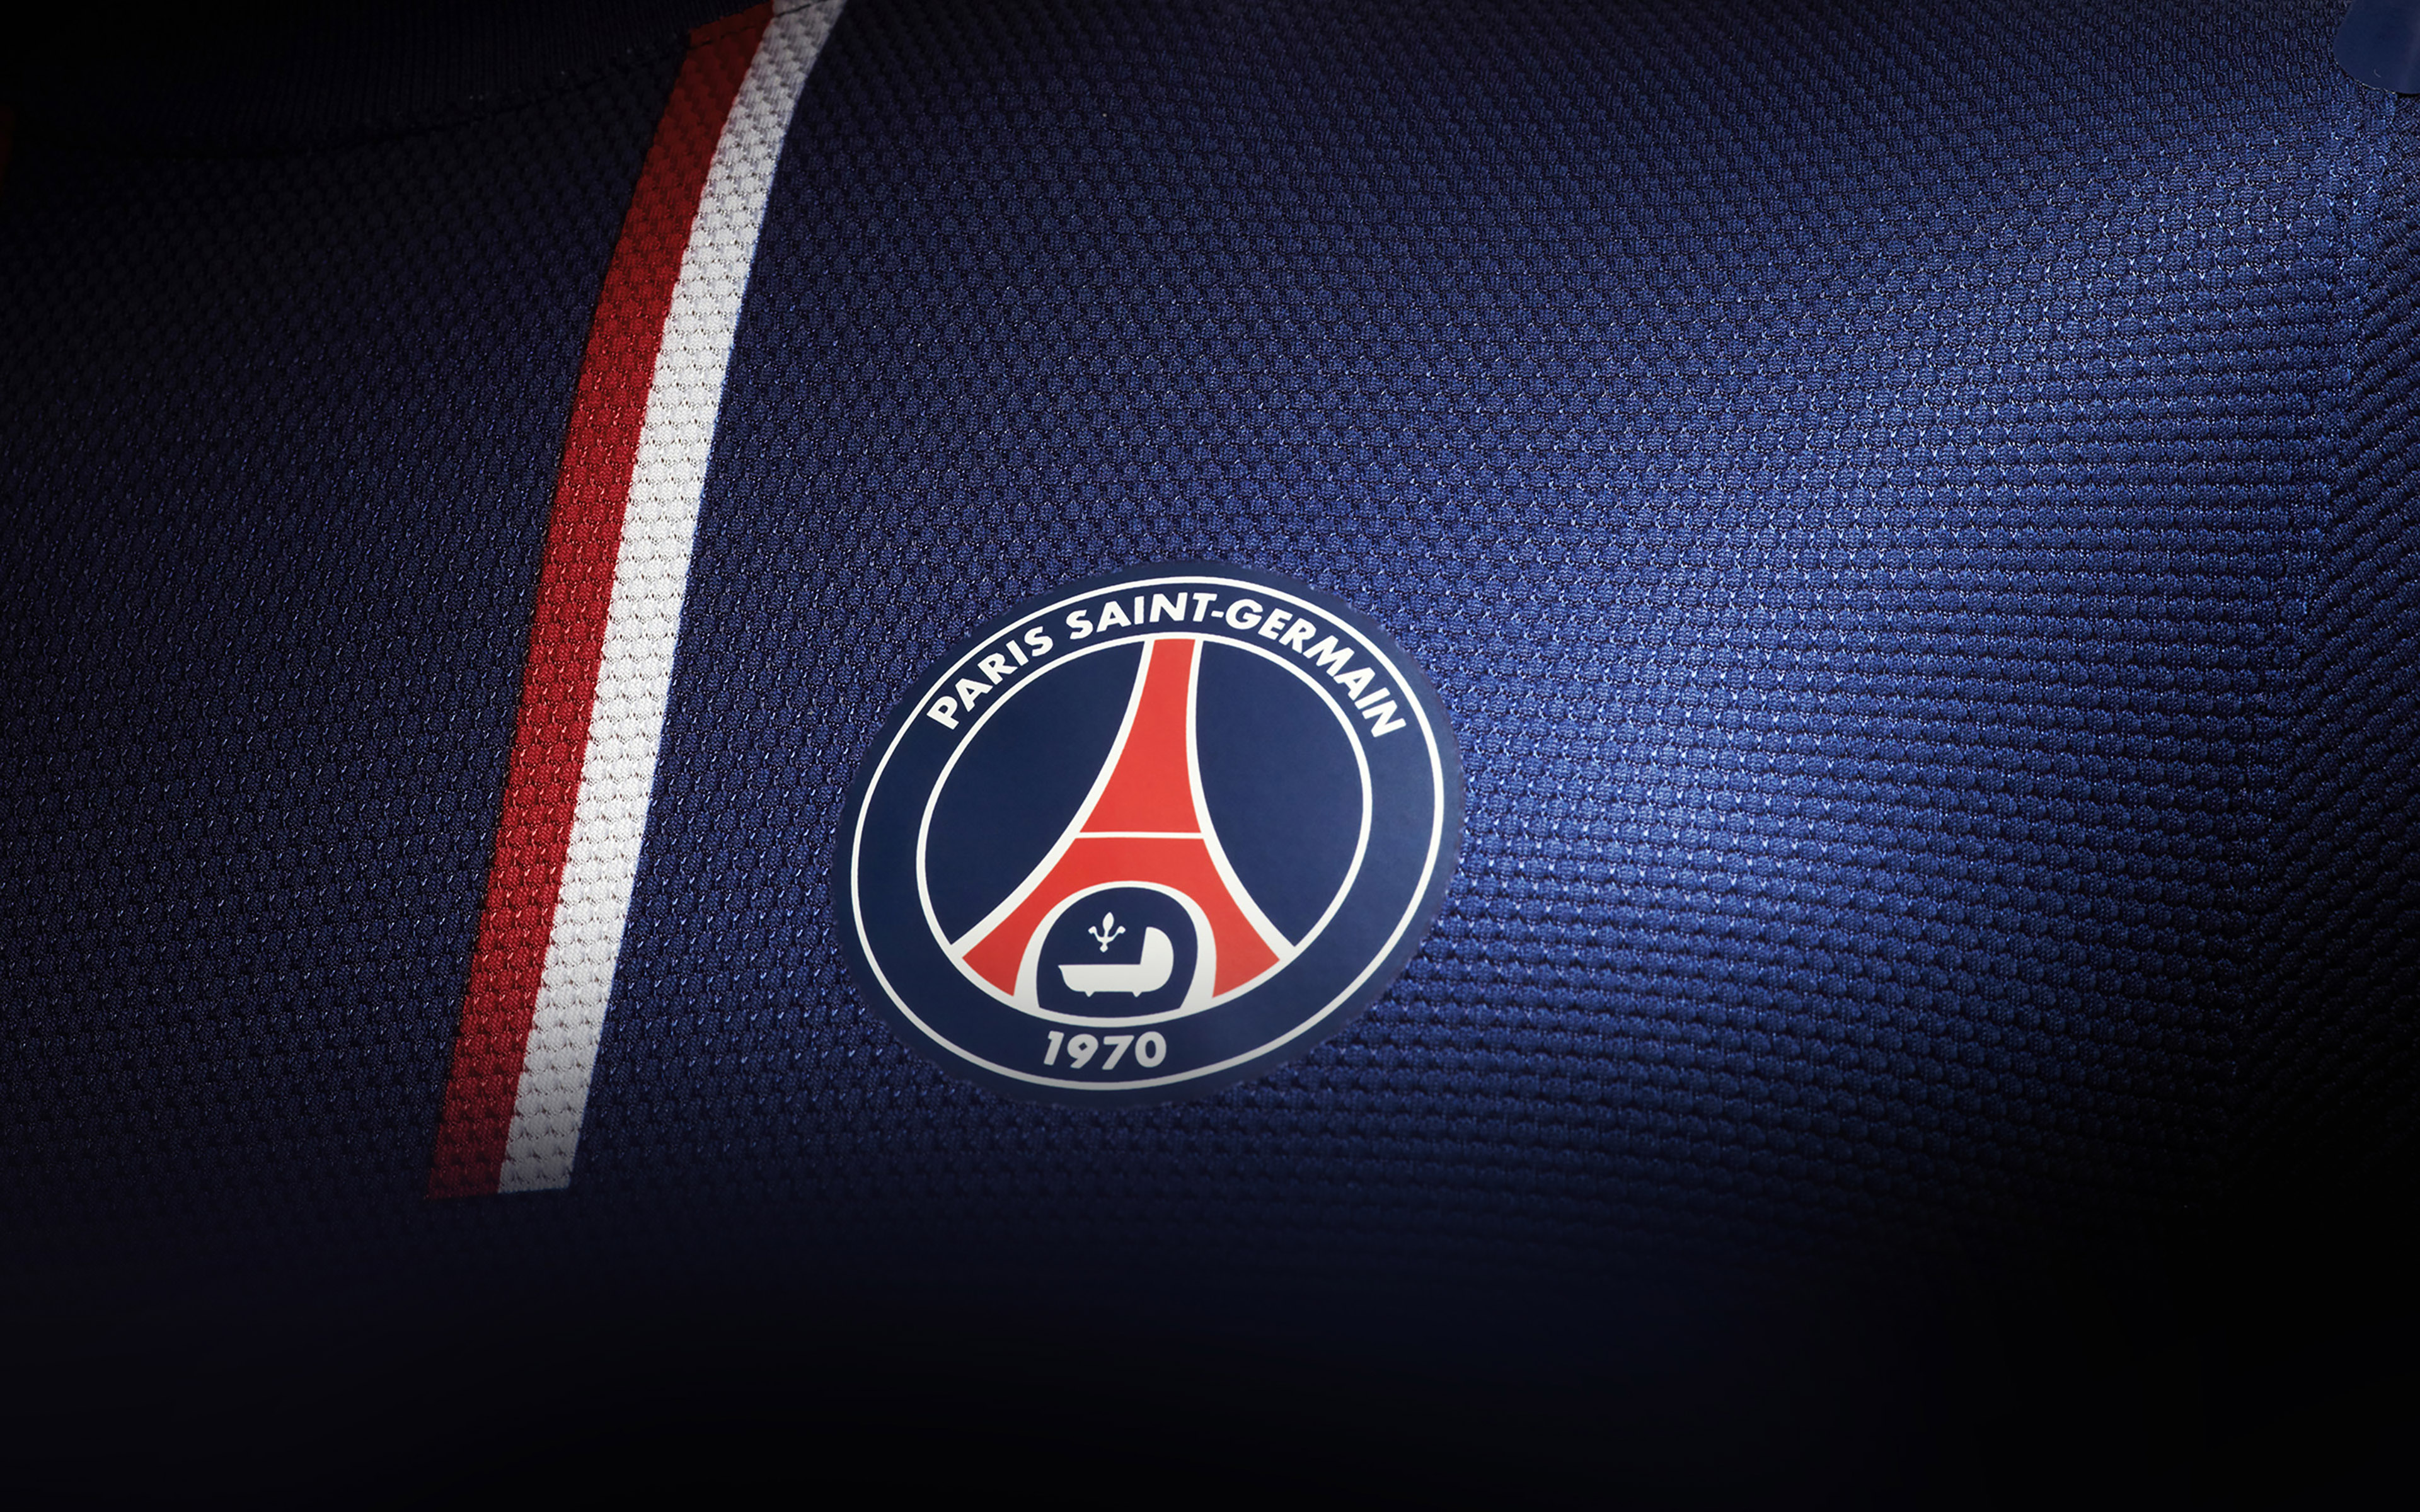 Paris In The Fall Wallpaper Ac61 Wallpaper Psg Paris Saint Germain Fc Jersey Logo